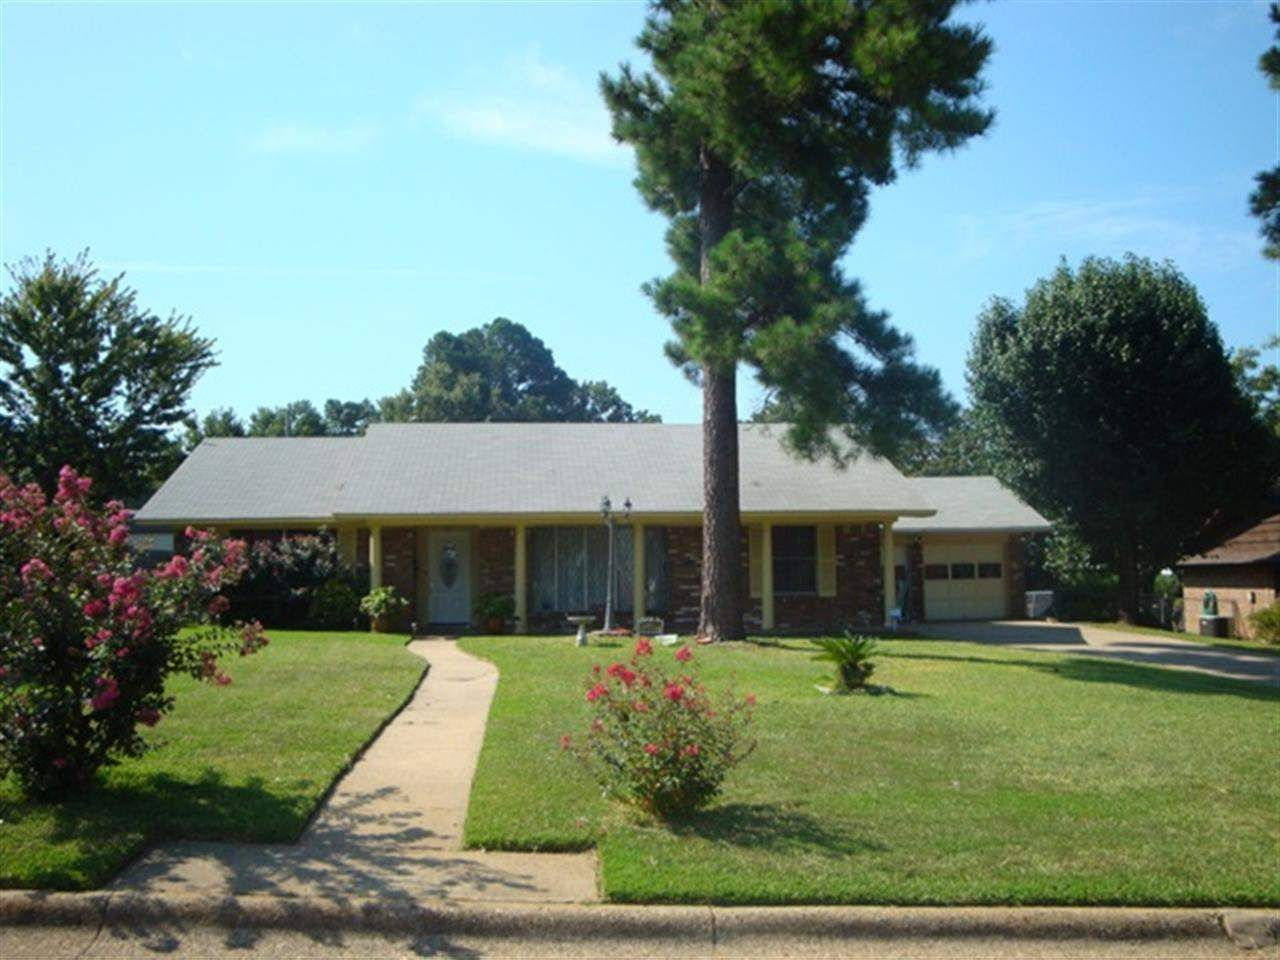 1717 S Park Rd, Texarkana TX 75503 - Nice home with three bedrooms, two baths, formal dining and breakfast area. Great fenced backyard to entertain friends. Located near shopping, dining and schools.